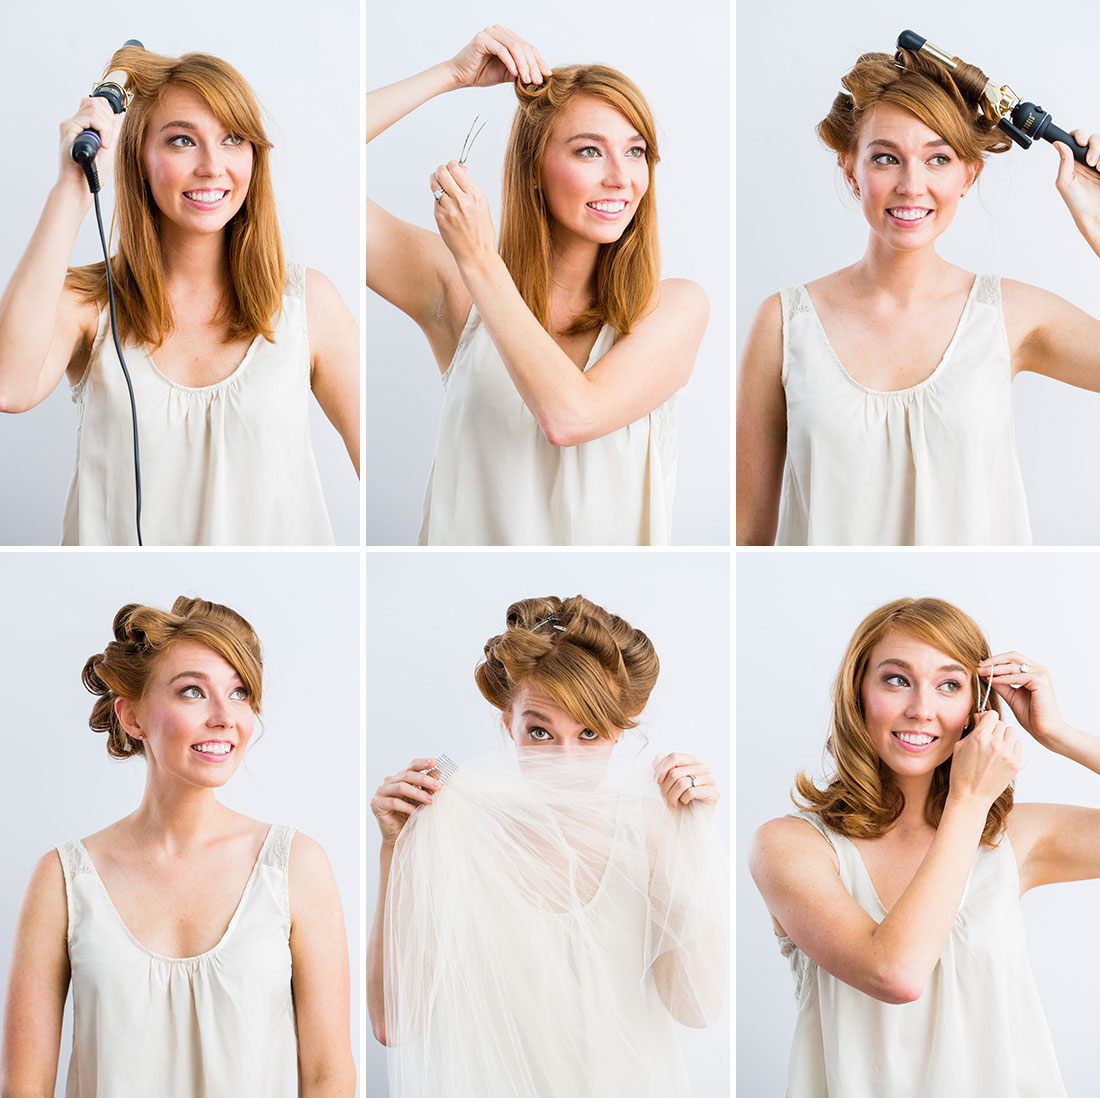 15 Step-by-Step Bridal Hairstyle Tutorials You Need to See